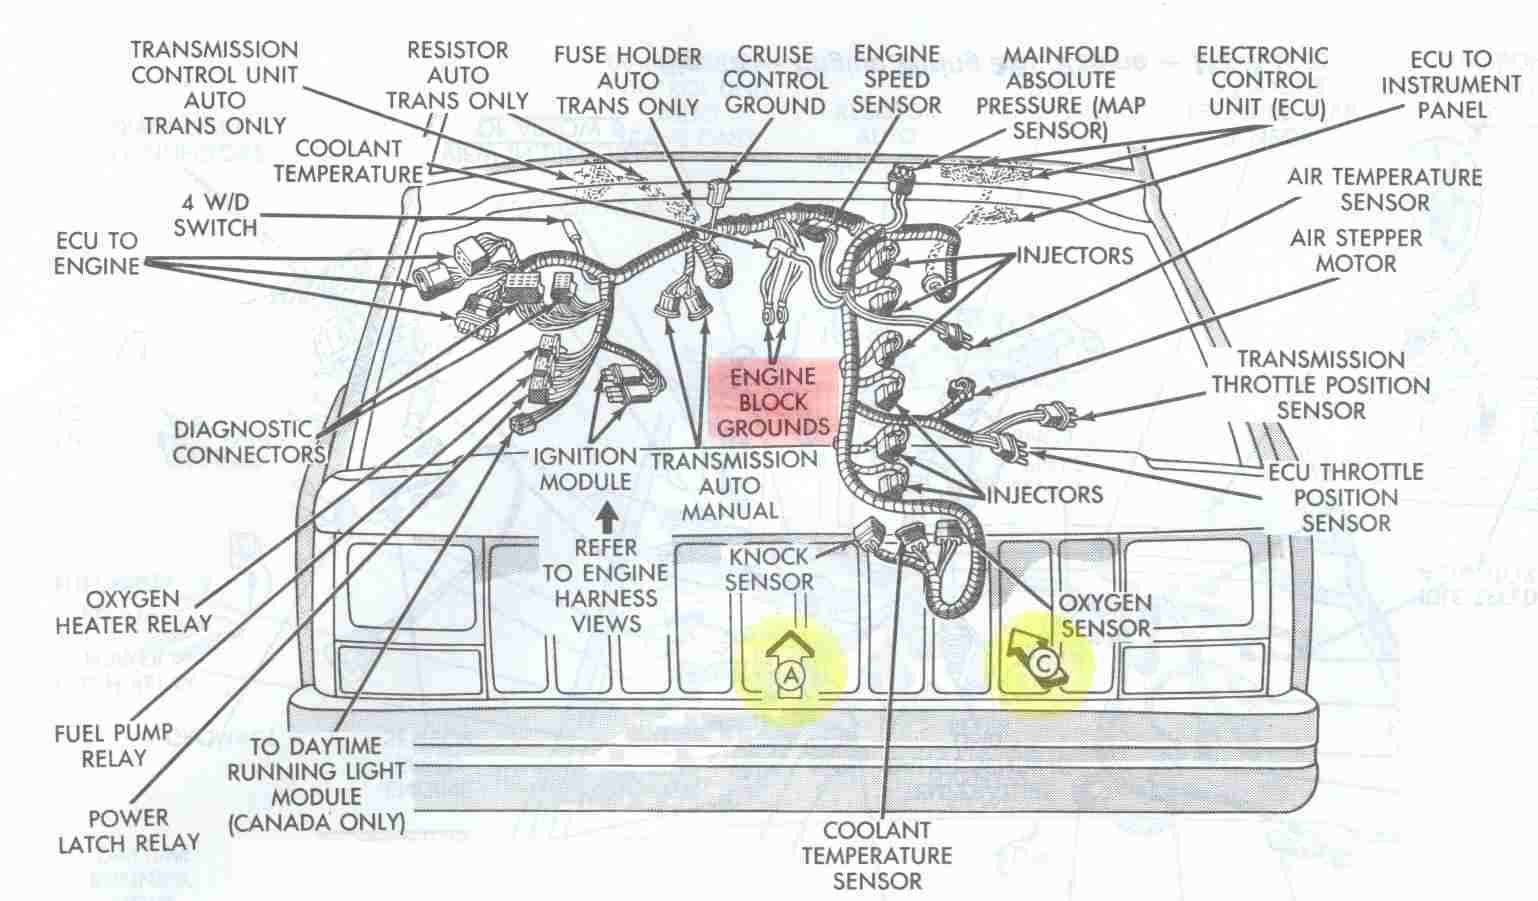 under hood wiring harness. Engine Bay schematic showing major electrical  ground points for 4.0L Jeep Cherokee engines.